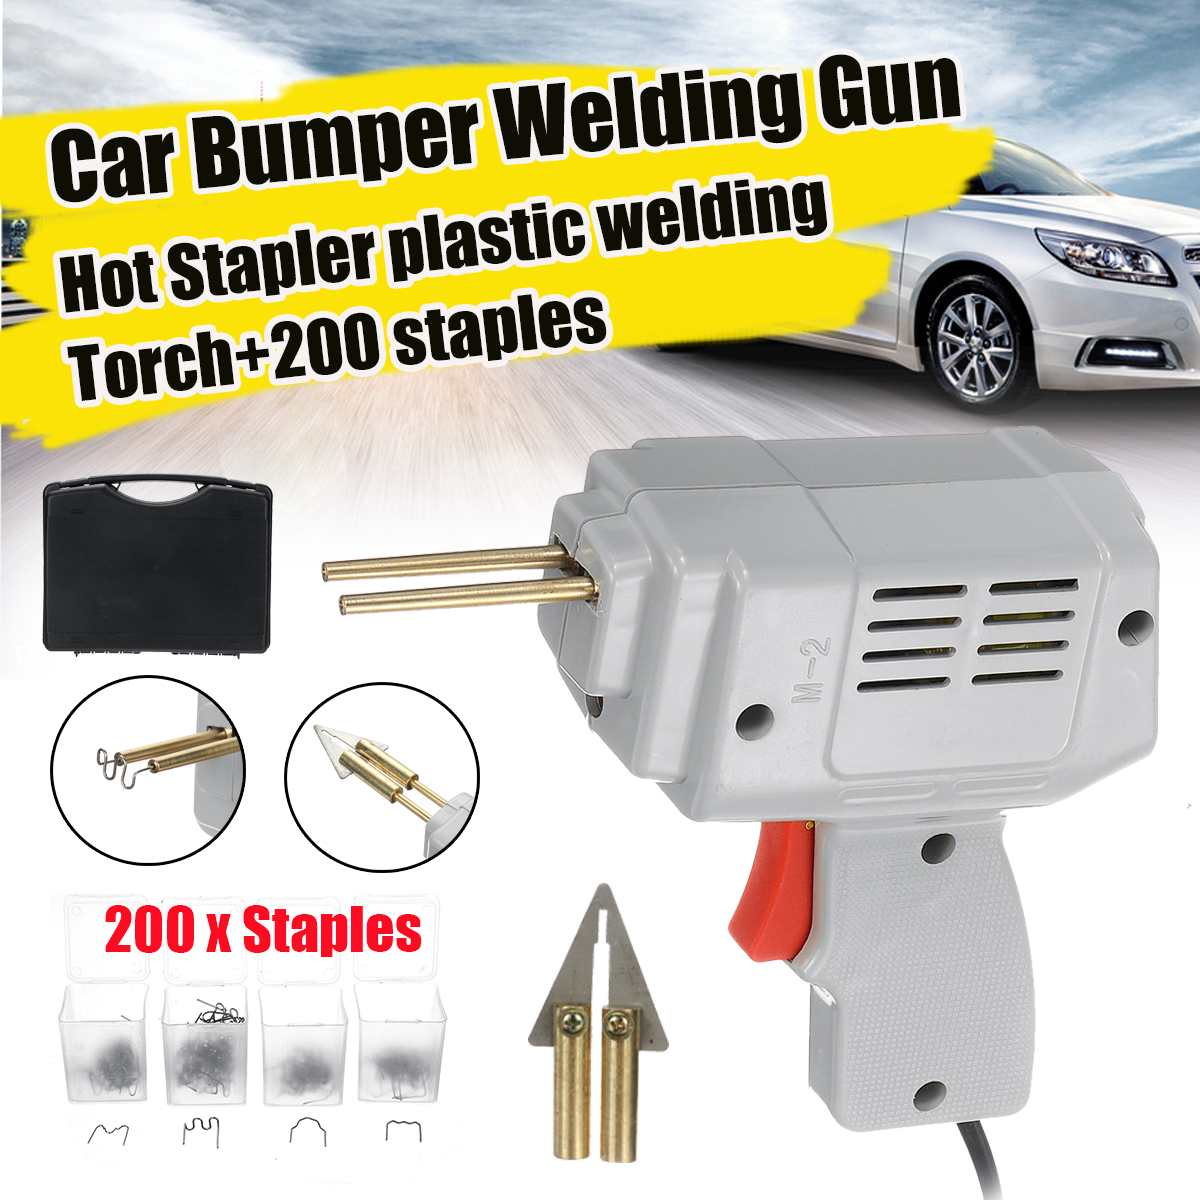 220v Handy Plastic Welder Garage Tools Hot Stapler Car Bumpe Plastic Welding Torch Repairing Machine Car Bumper Repair